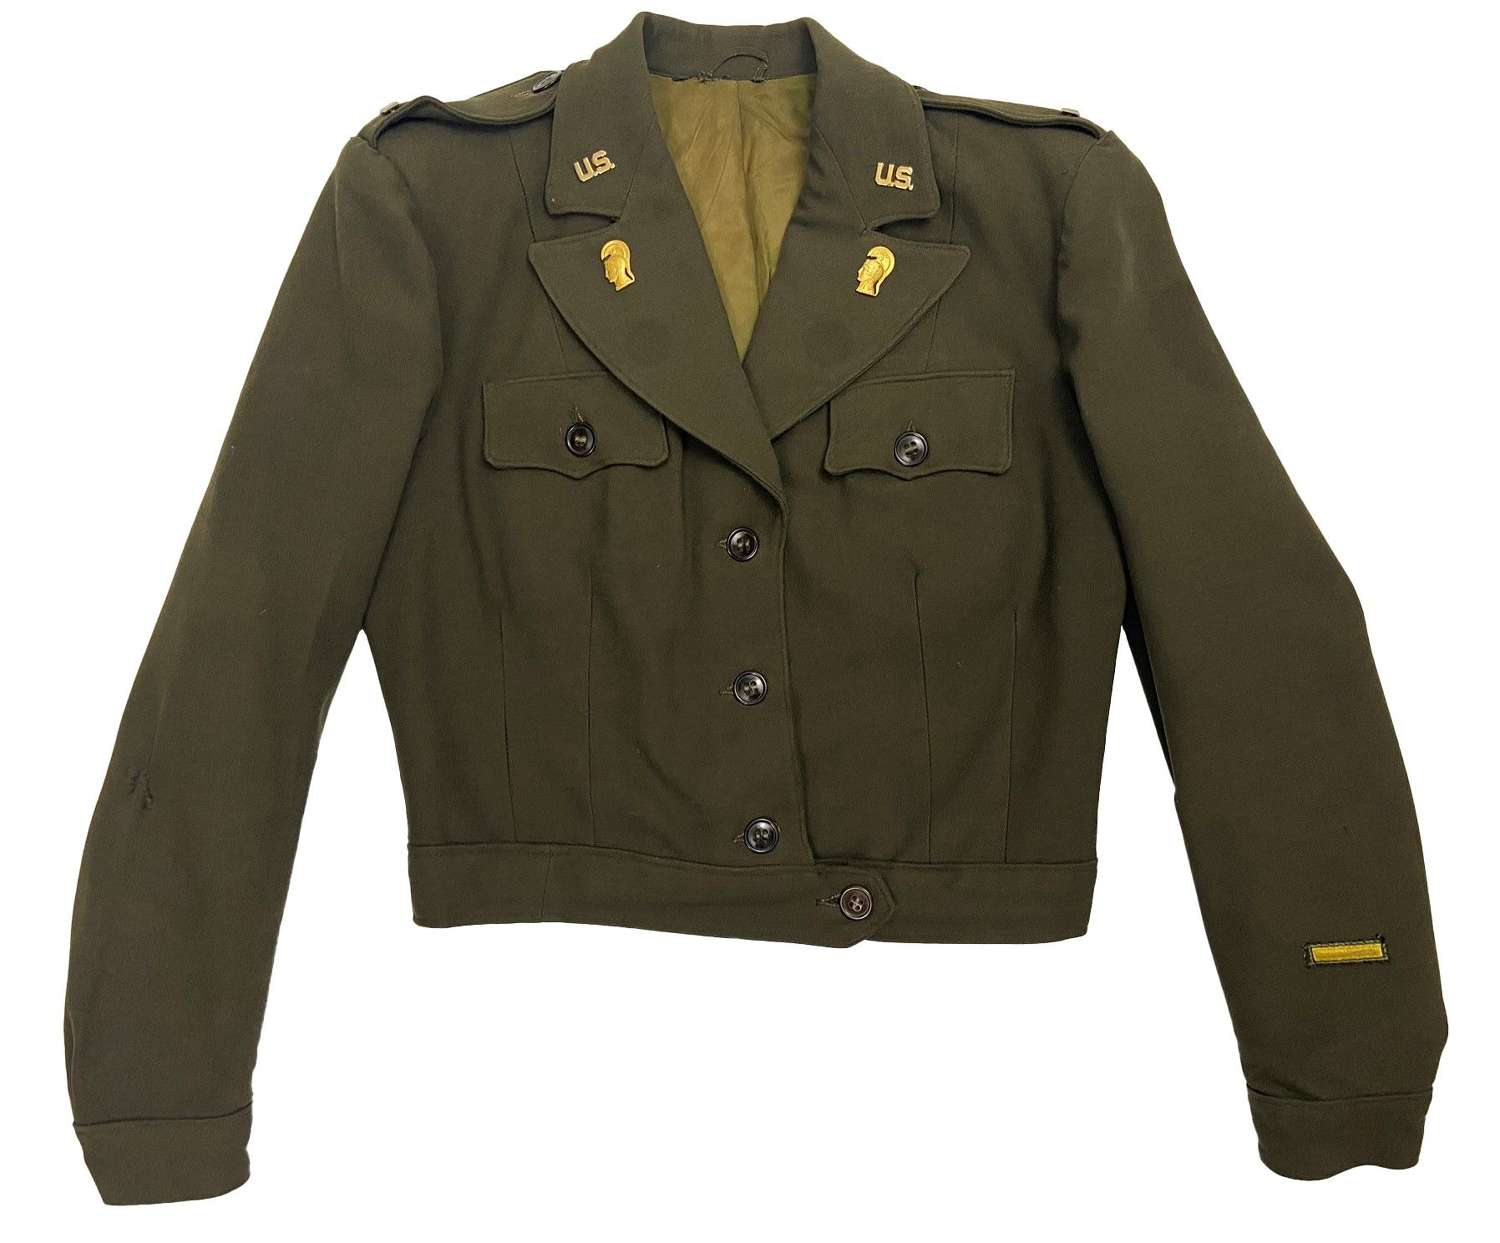 Original WW2 US Women's Army Corps ETO Officers Jacket